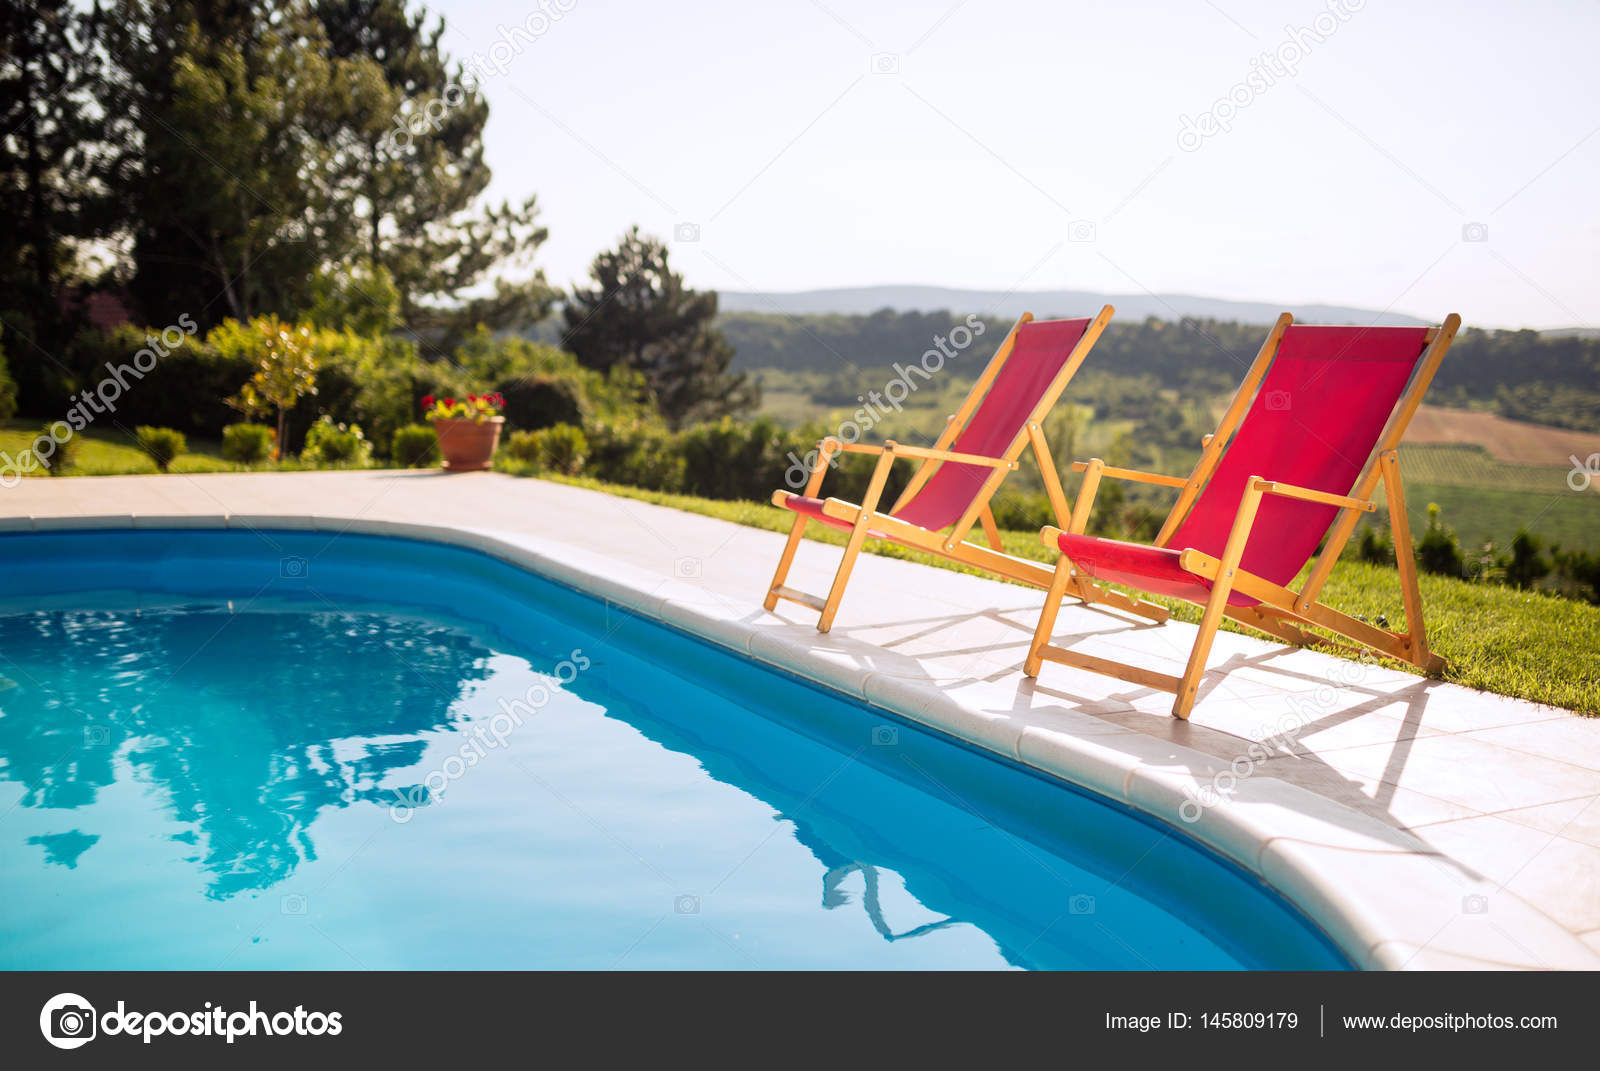 Sunbathing Chairs Pool With Sunbathing Chairs Stock Photo Nd3000 145809179